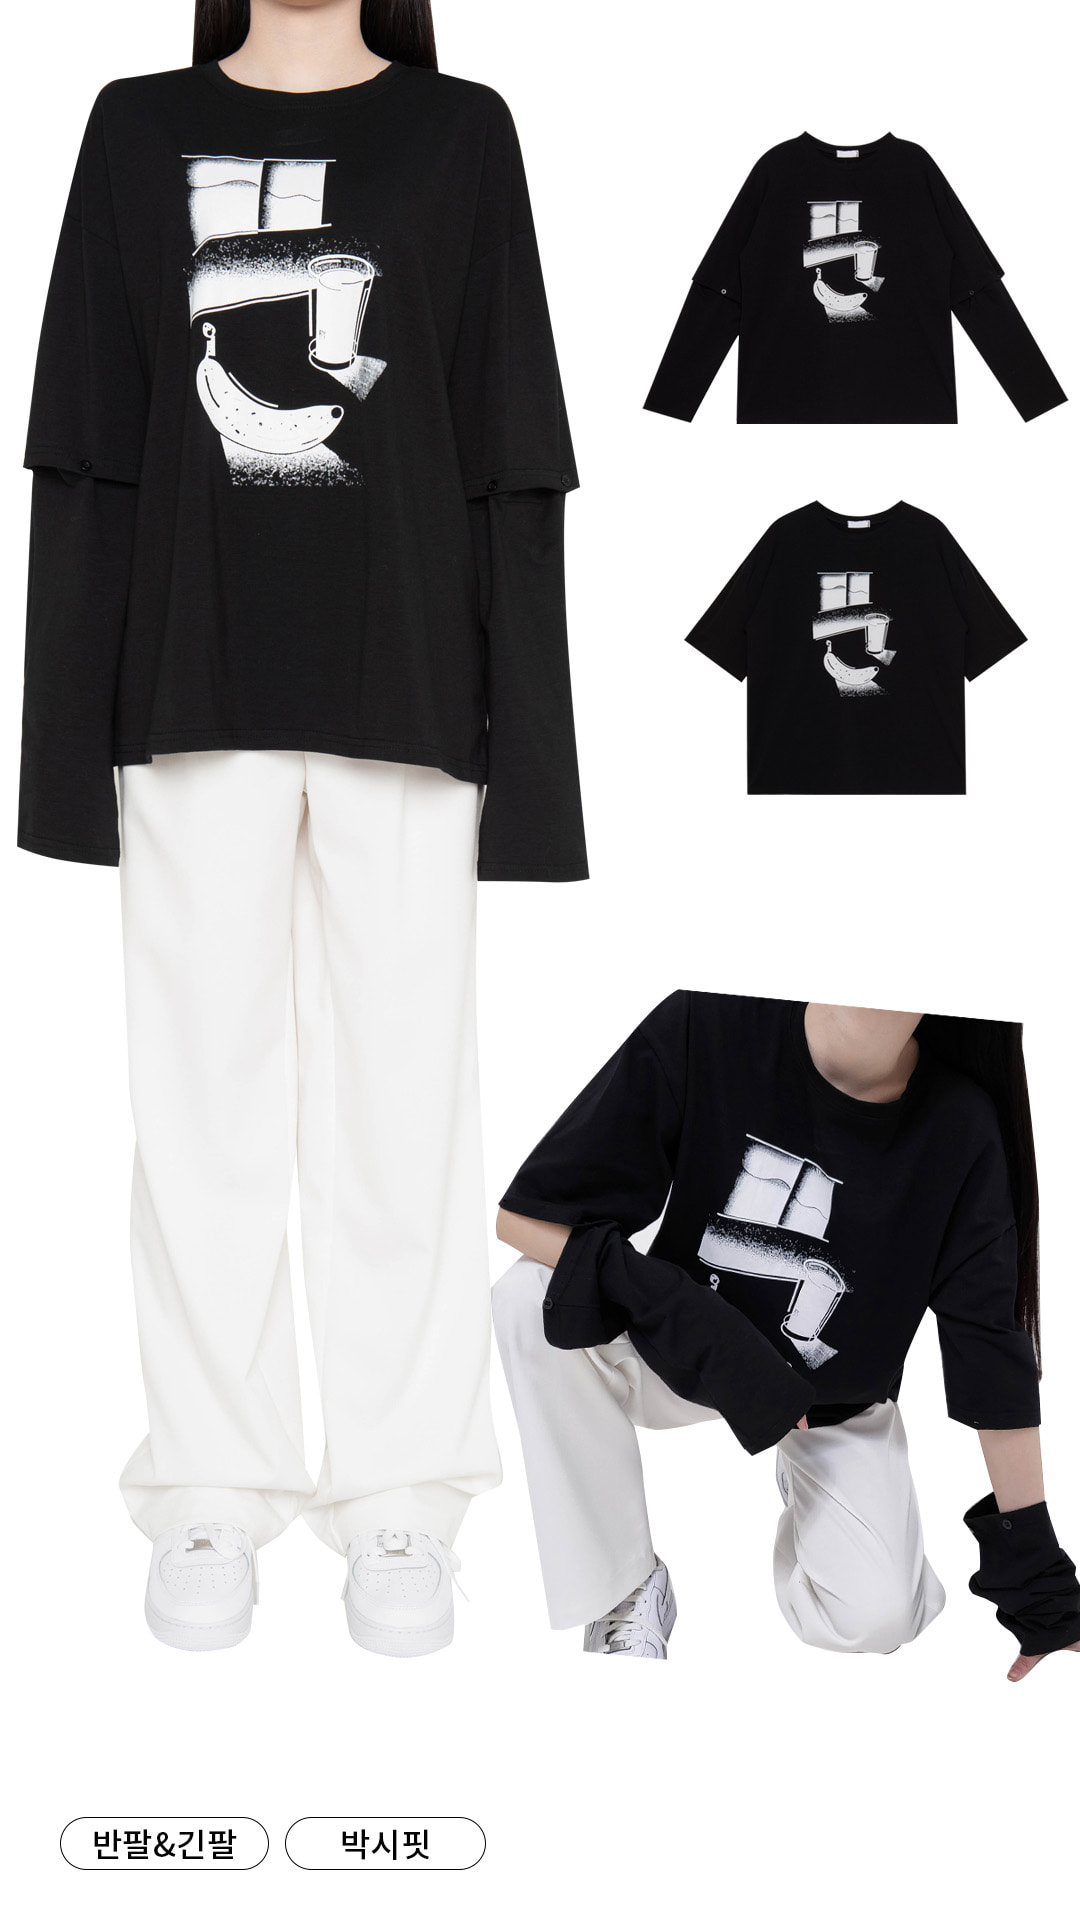 Removable Sleeve T-Shirt